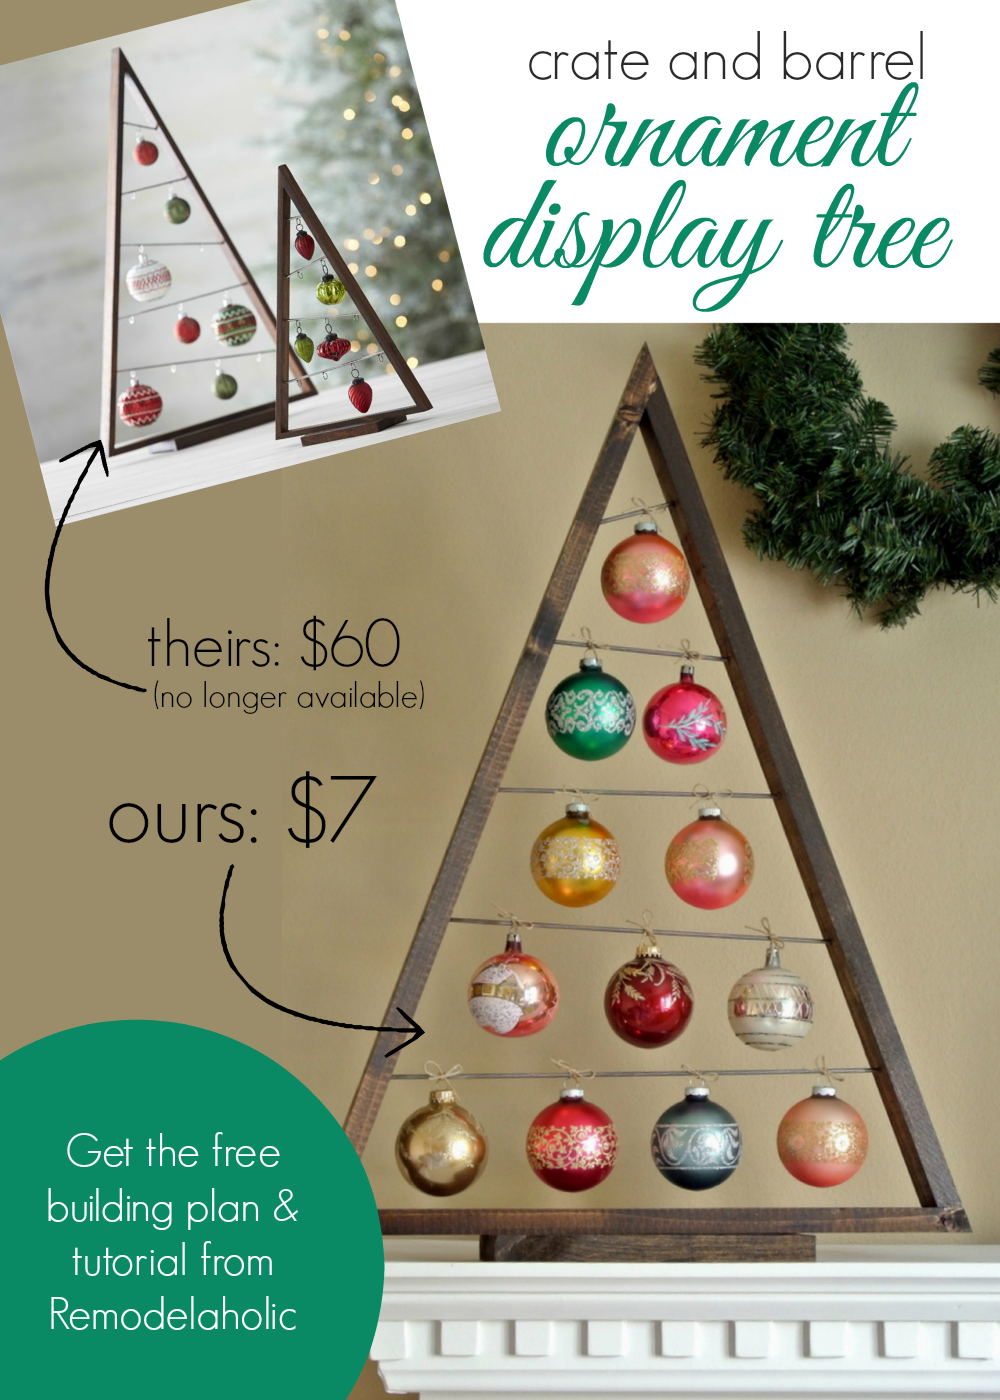 diy crate and barrel ornament display tree remodelaholic knockoff christmas - Crate And Barrel Christmas Decorations